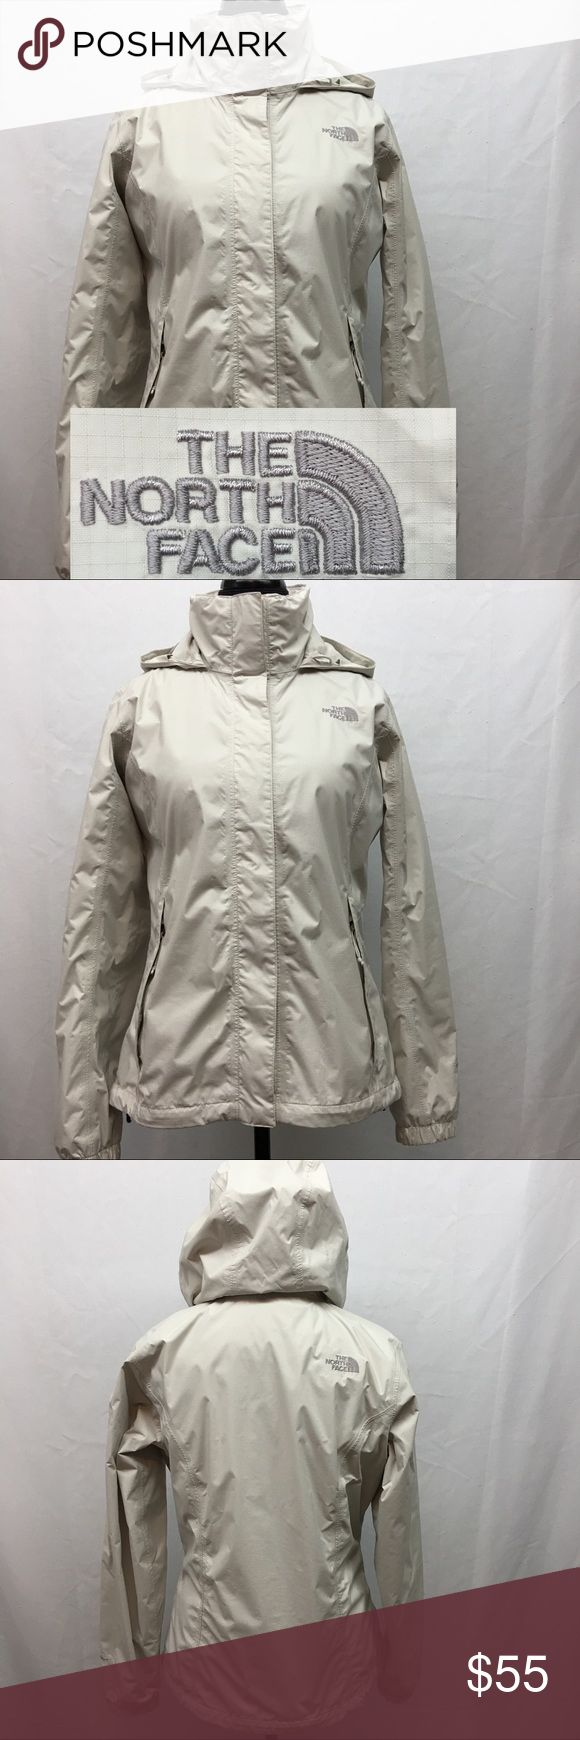 """The North Face Jacket Women's The North Face hyvent jacket. Oatmeal color. Has been worn many times but is overall great condition. No stains or tears. A little bit of fuzz in the Velcro. Size M/M. Armpit to armpit 21"""". Shoulder to bottom hem 24"""". Price is Firm unless bundled. The North Face Jackets & Coats"""